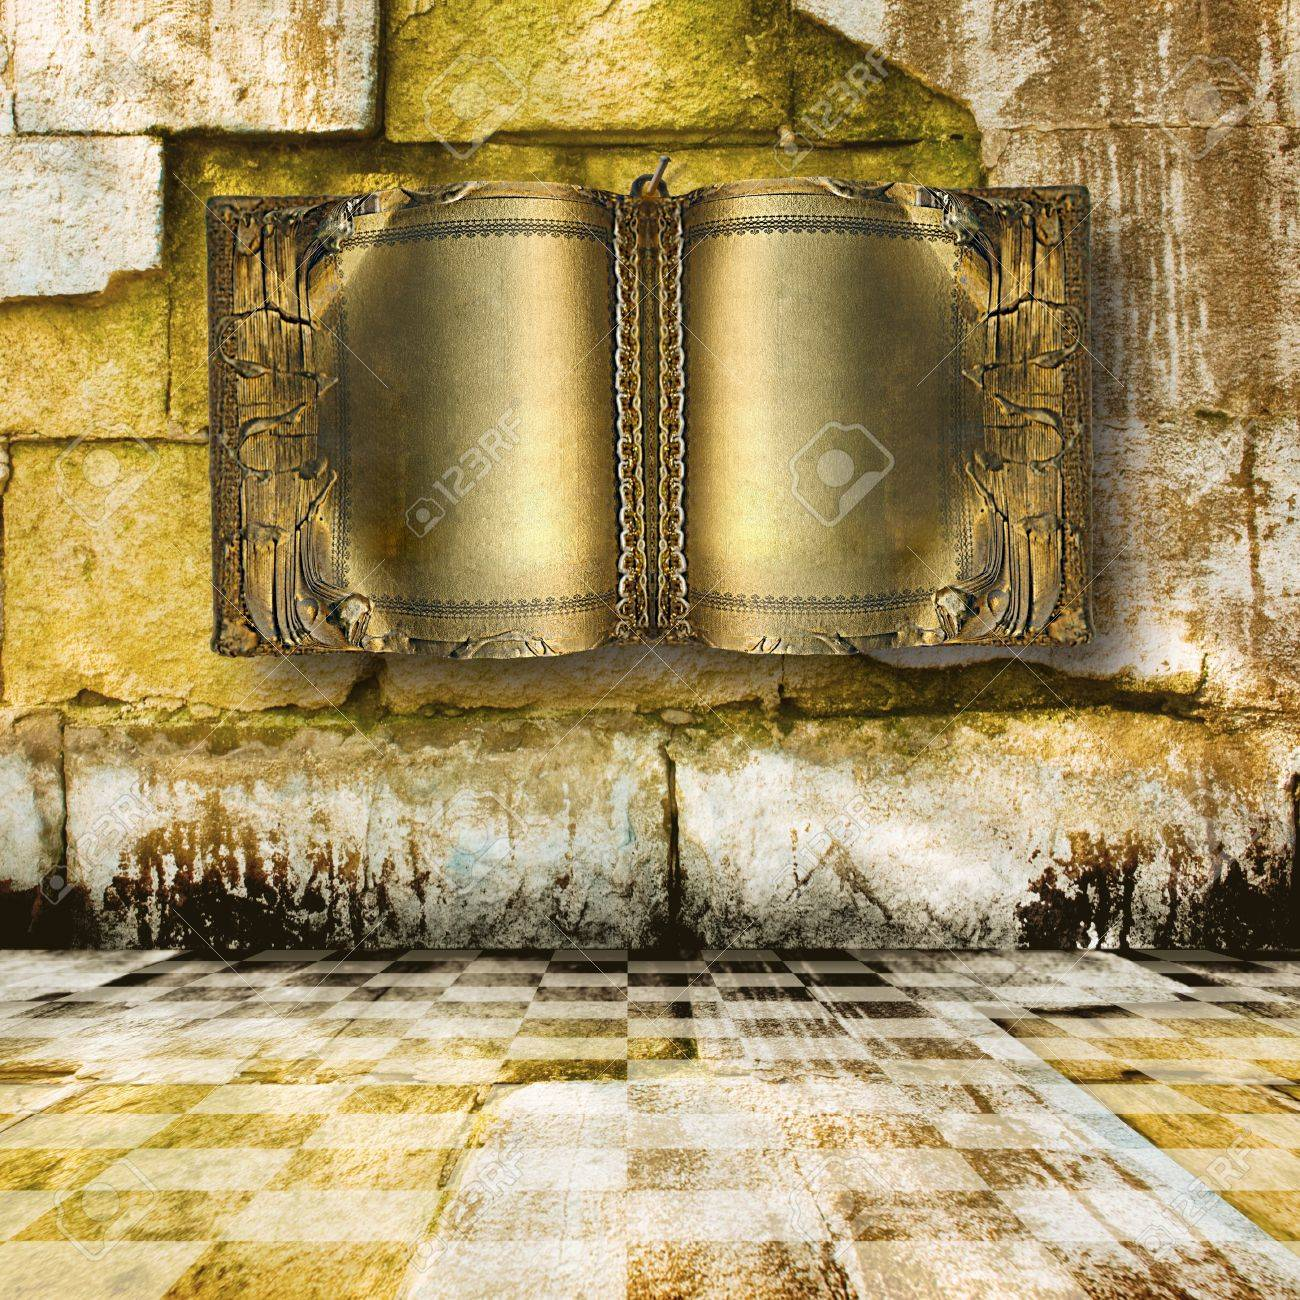 Old ancient book with gold pages on the stone  wall in castle Stock Photo - 8099622